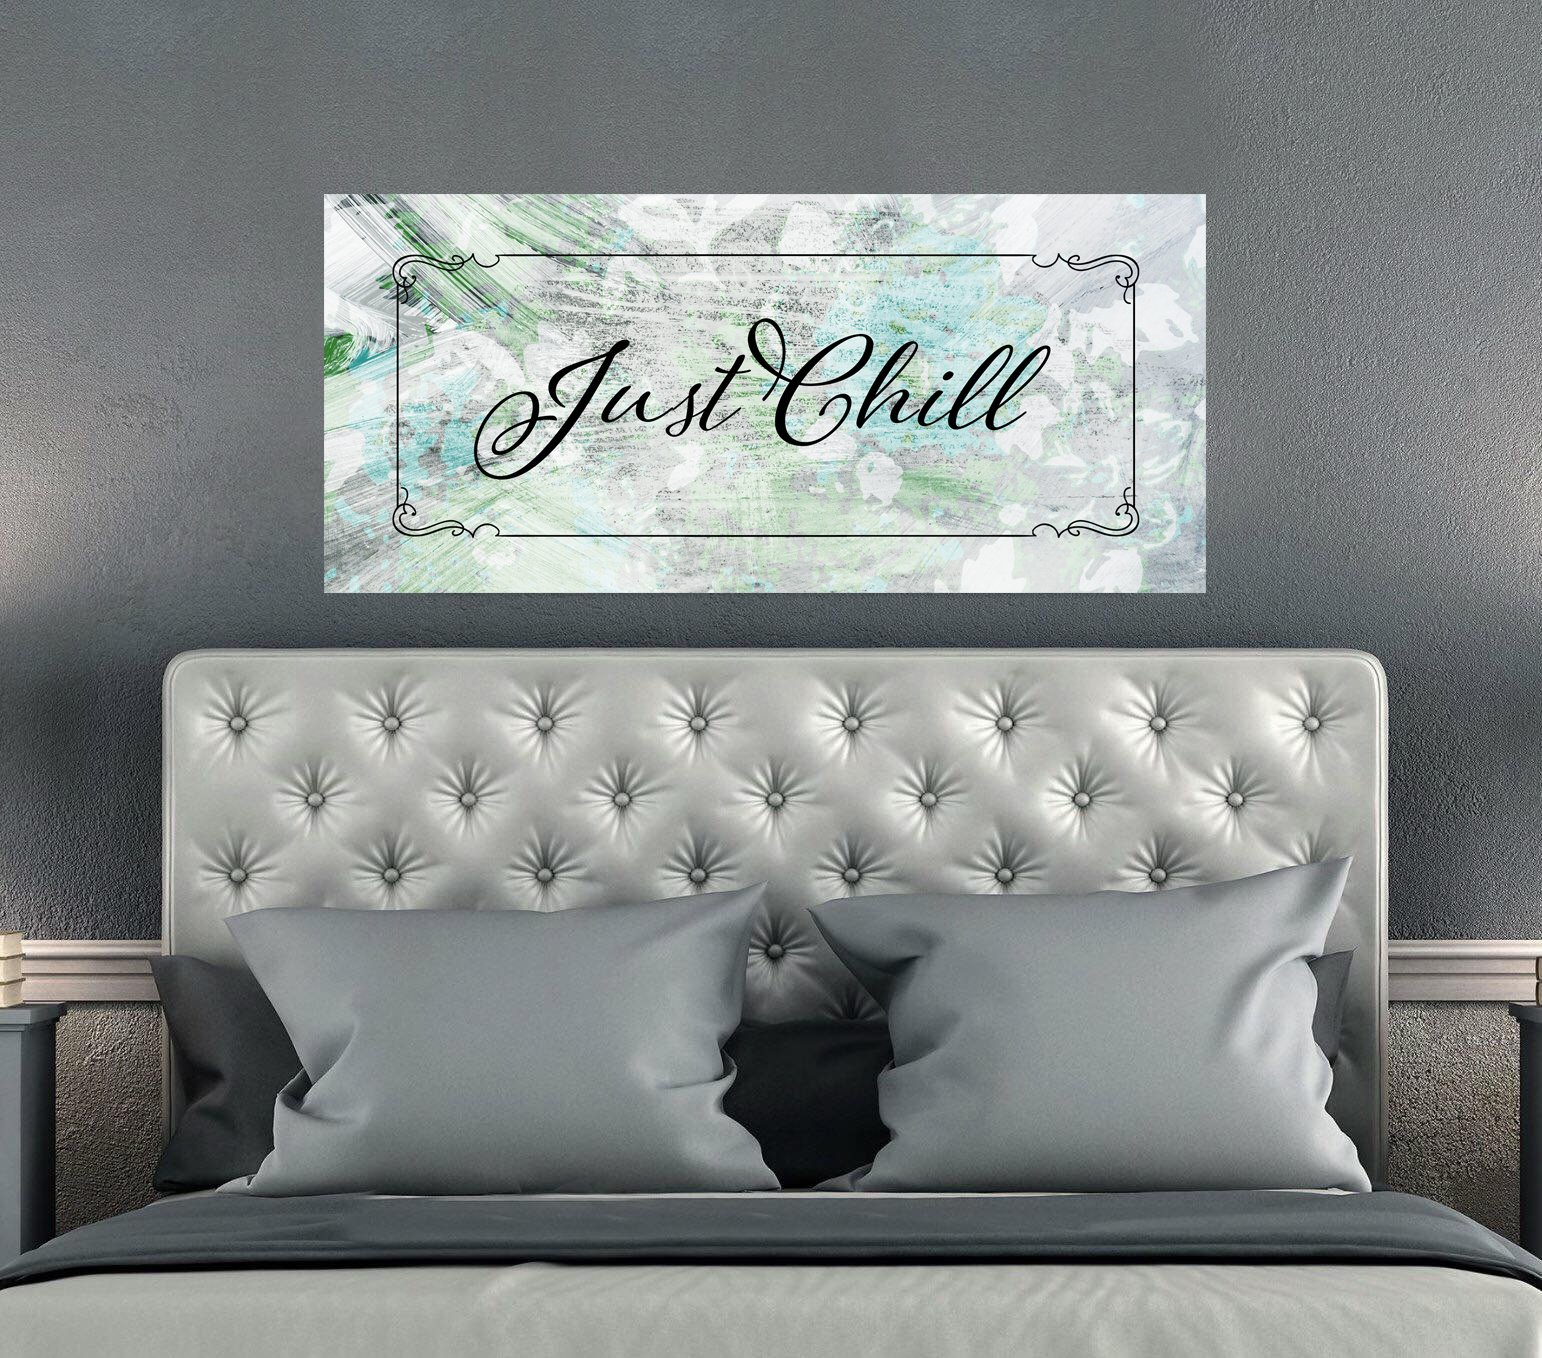 Bedroom Wall Art Just Chill Wood Frame Ready To Hang Bedroom Decor On A Budget Wall Decor Bedroom Bedroom Decor For Couples